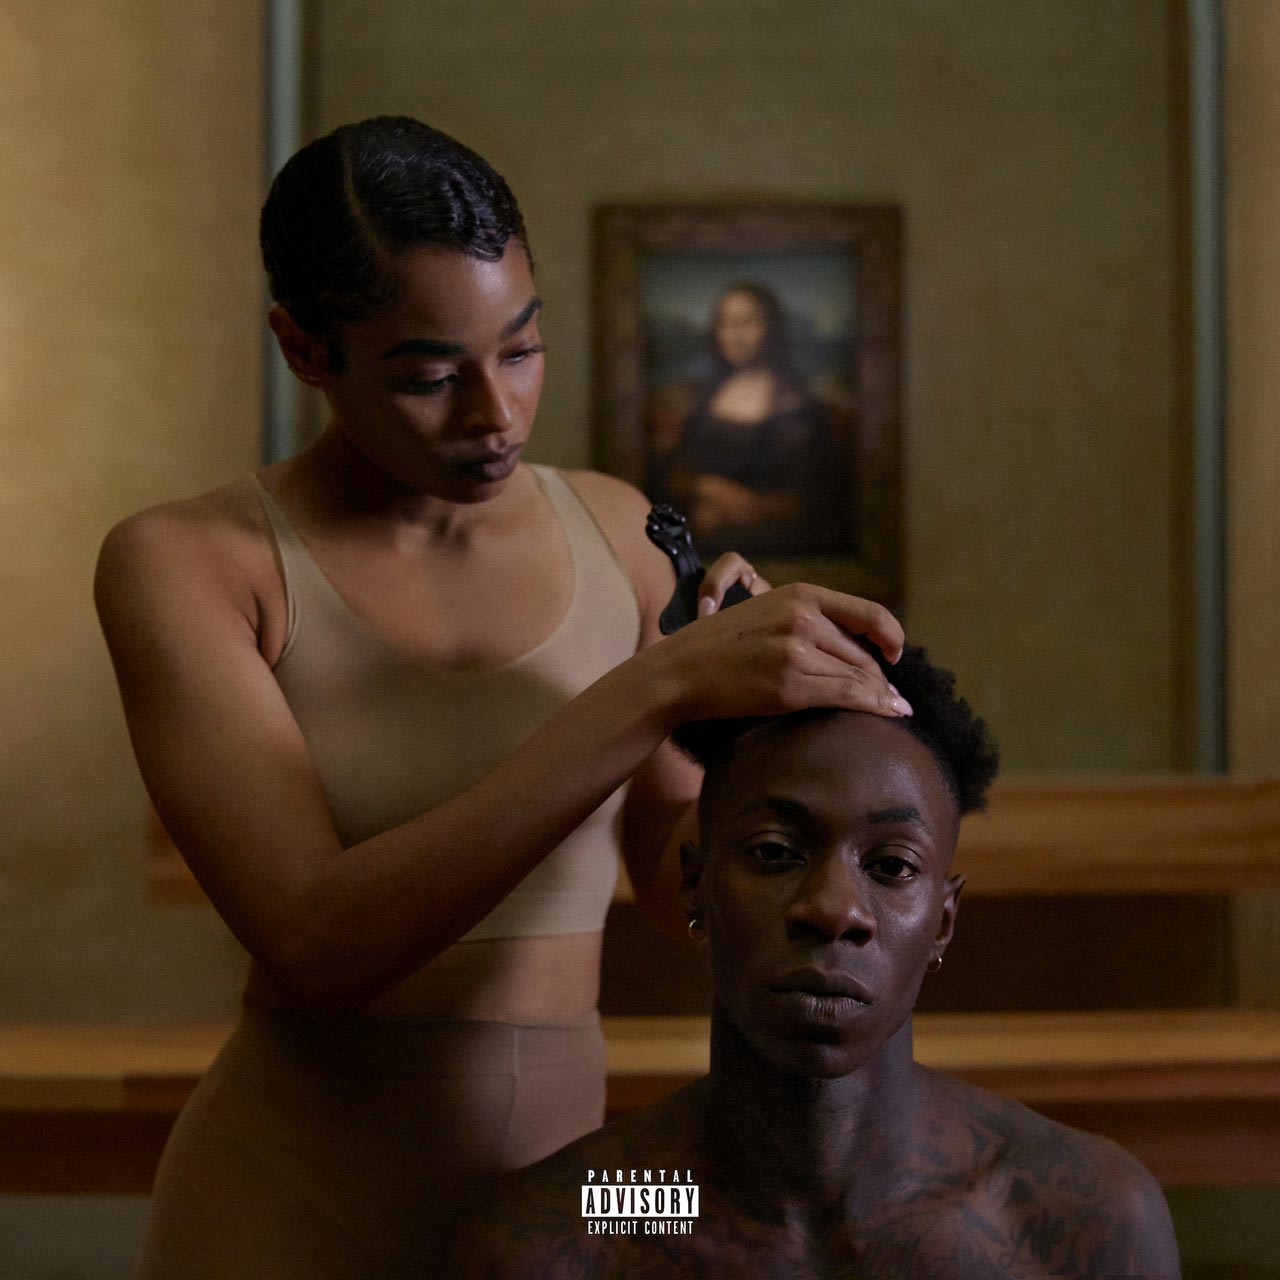 beyoncé & jay-z You Can Now Listen To Beyoncé & JAY-Z's New 'EVERYTHING IS LOVE' Album On Spotify & Apple Music album